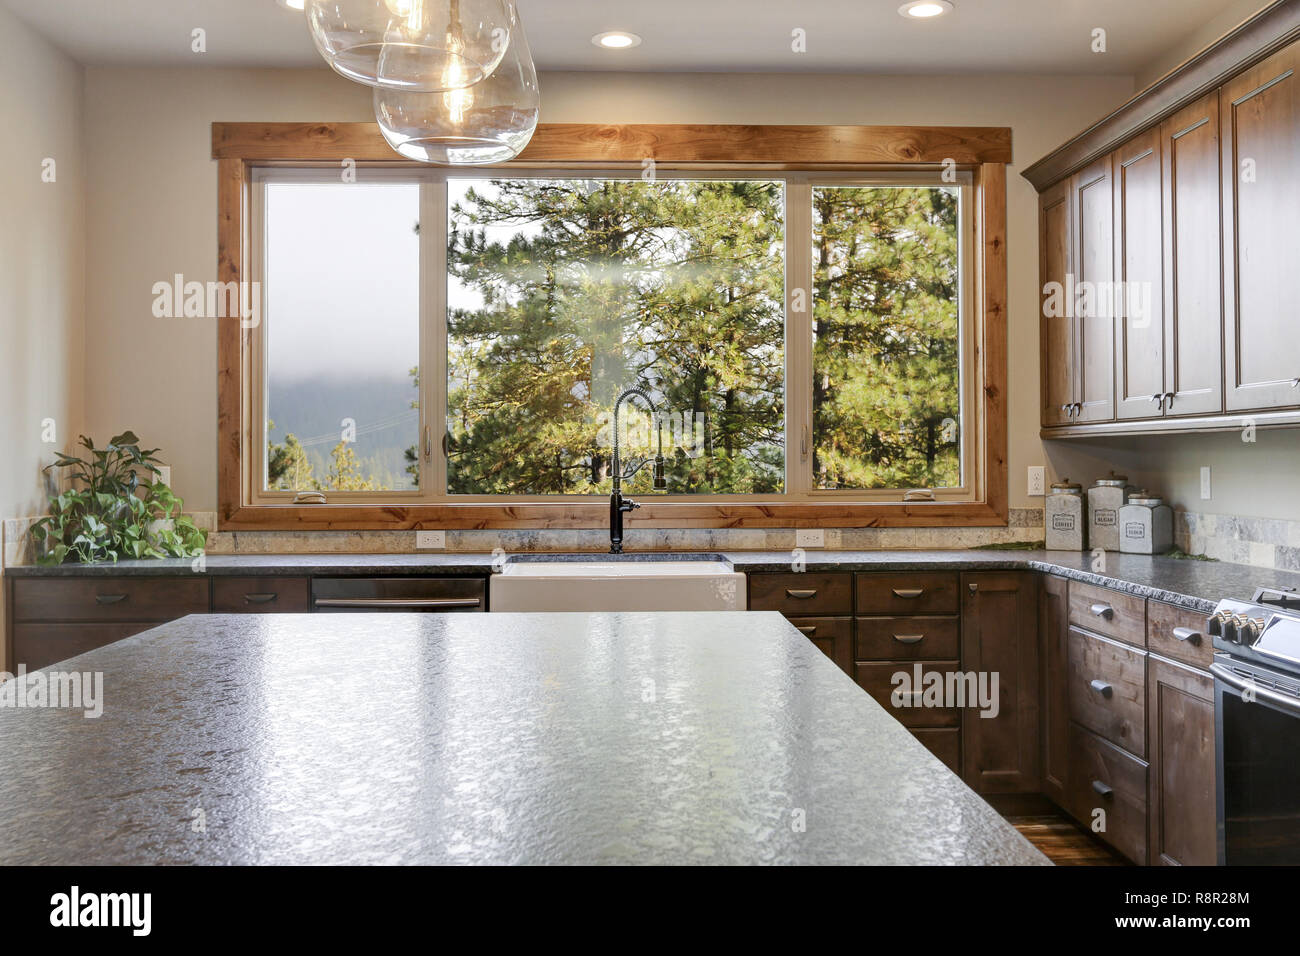 Kitchen Design Open Plan Luxurious Open Plan Kitchen Design With Large Center Island Granite